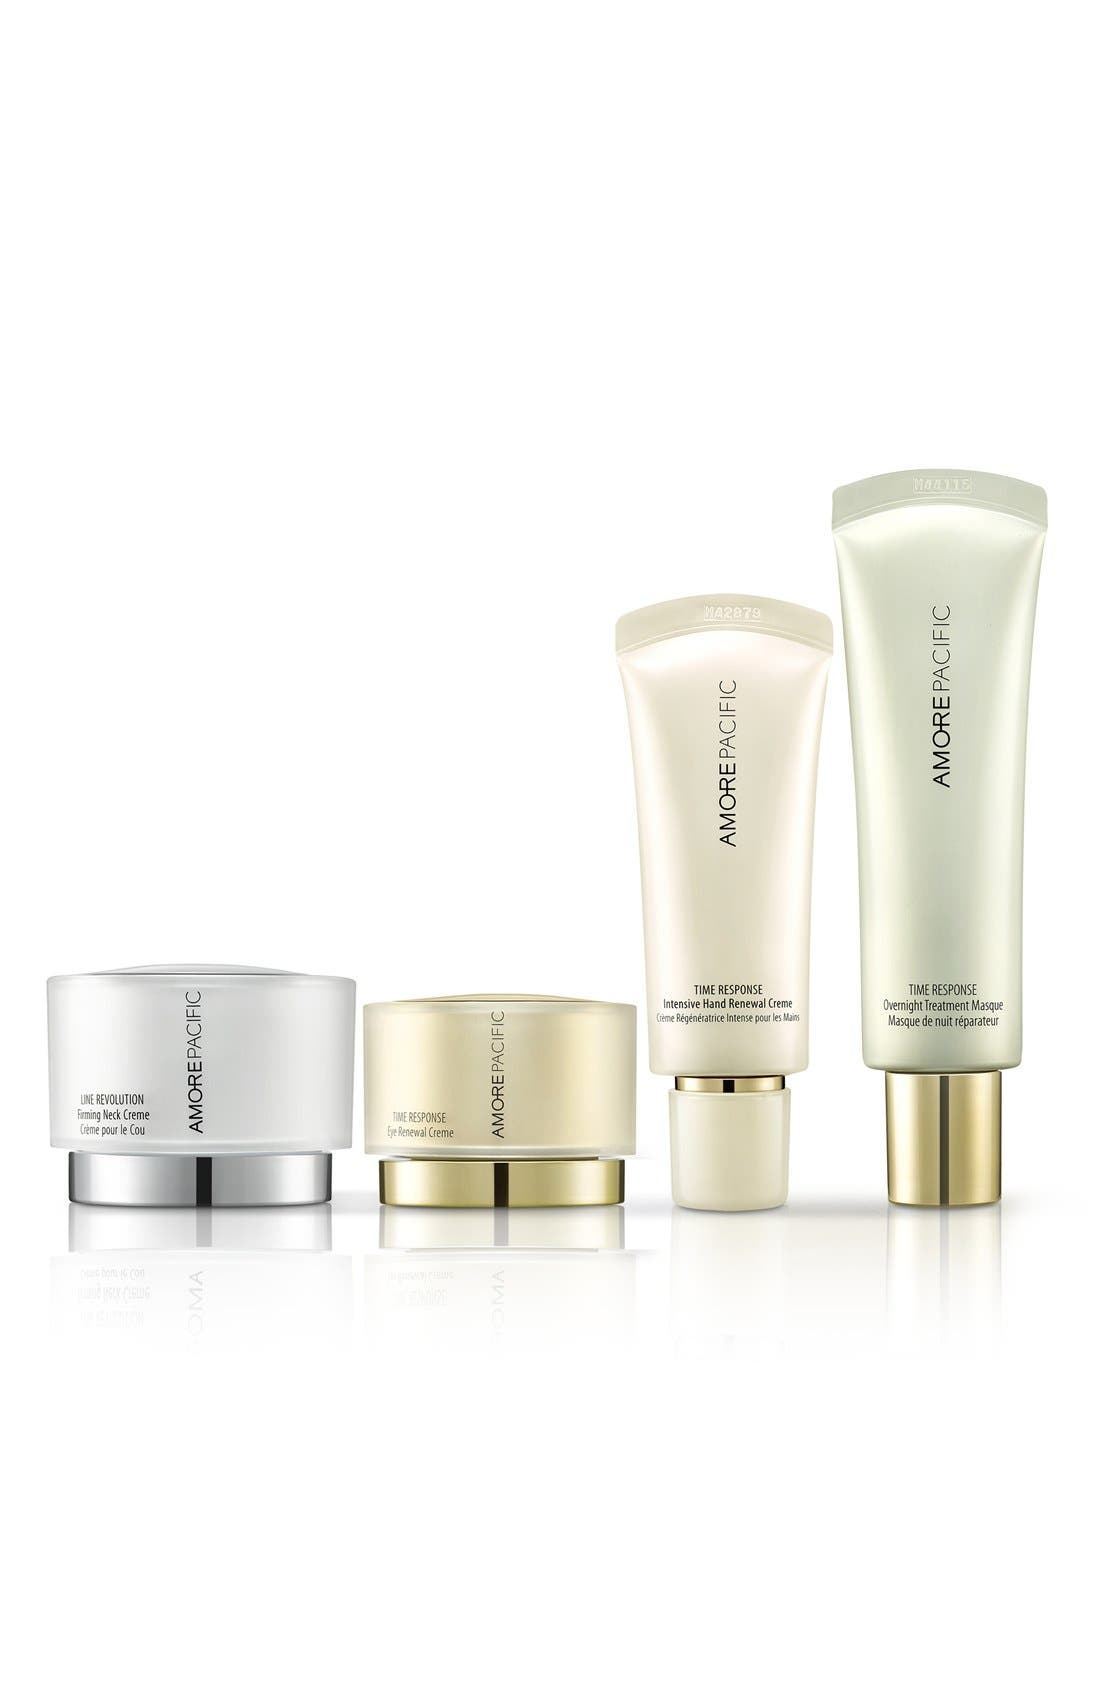 AMOREPACIFIC 'Time Zones' Collection ($501 Value)